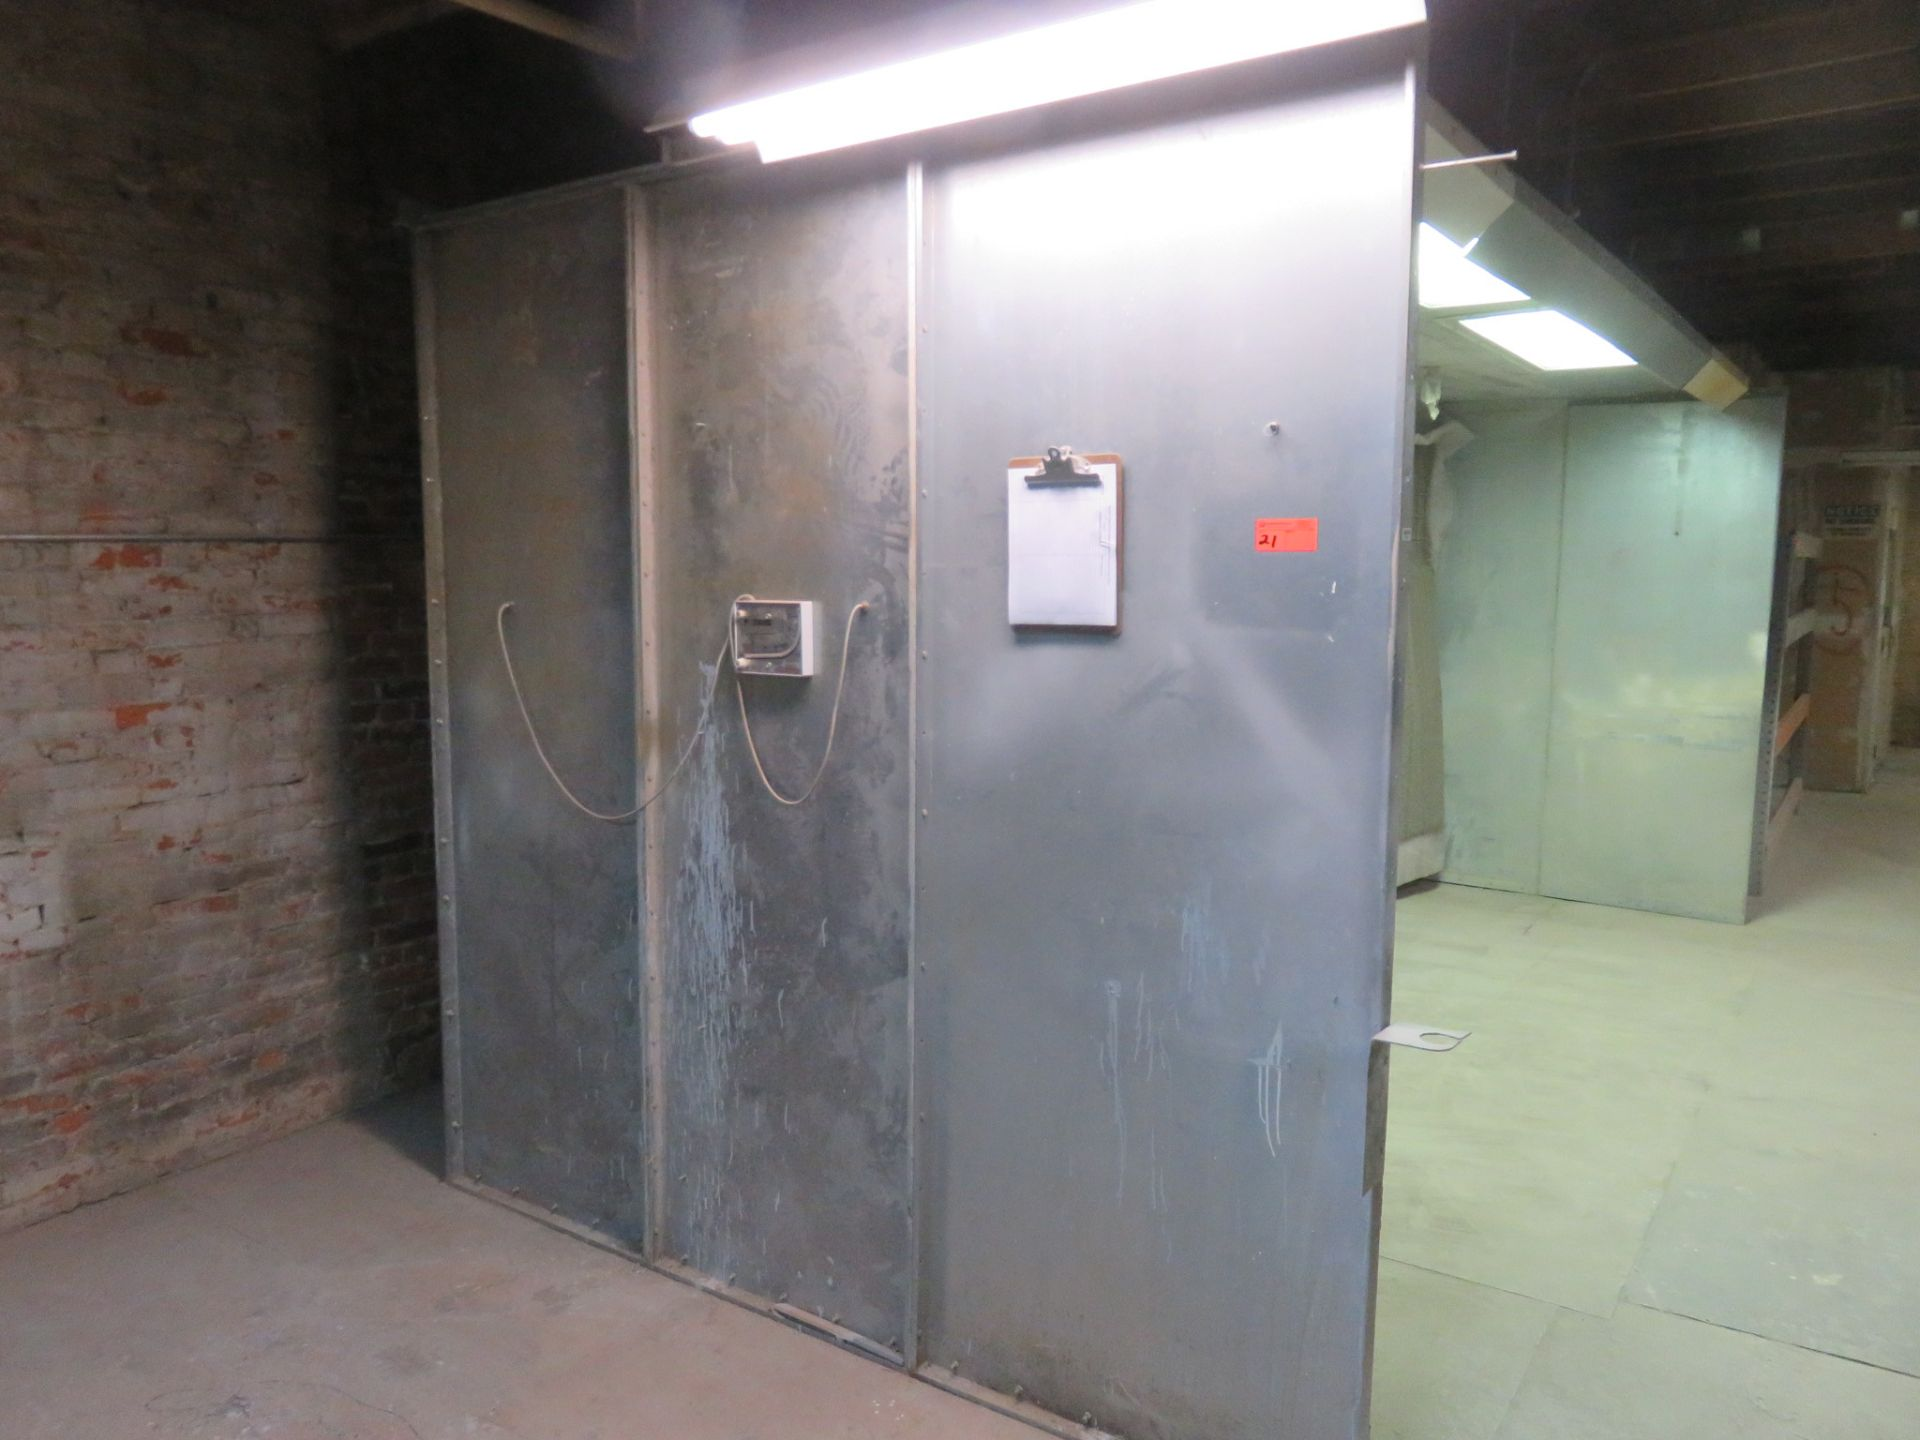 Paint Booth approx. 17 'x 8' x 8' - Image 2 of 4